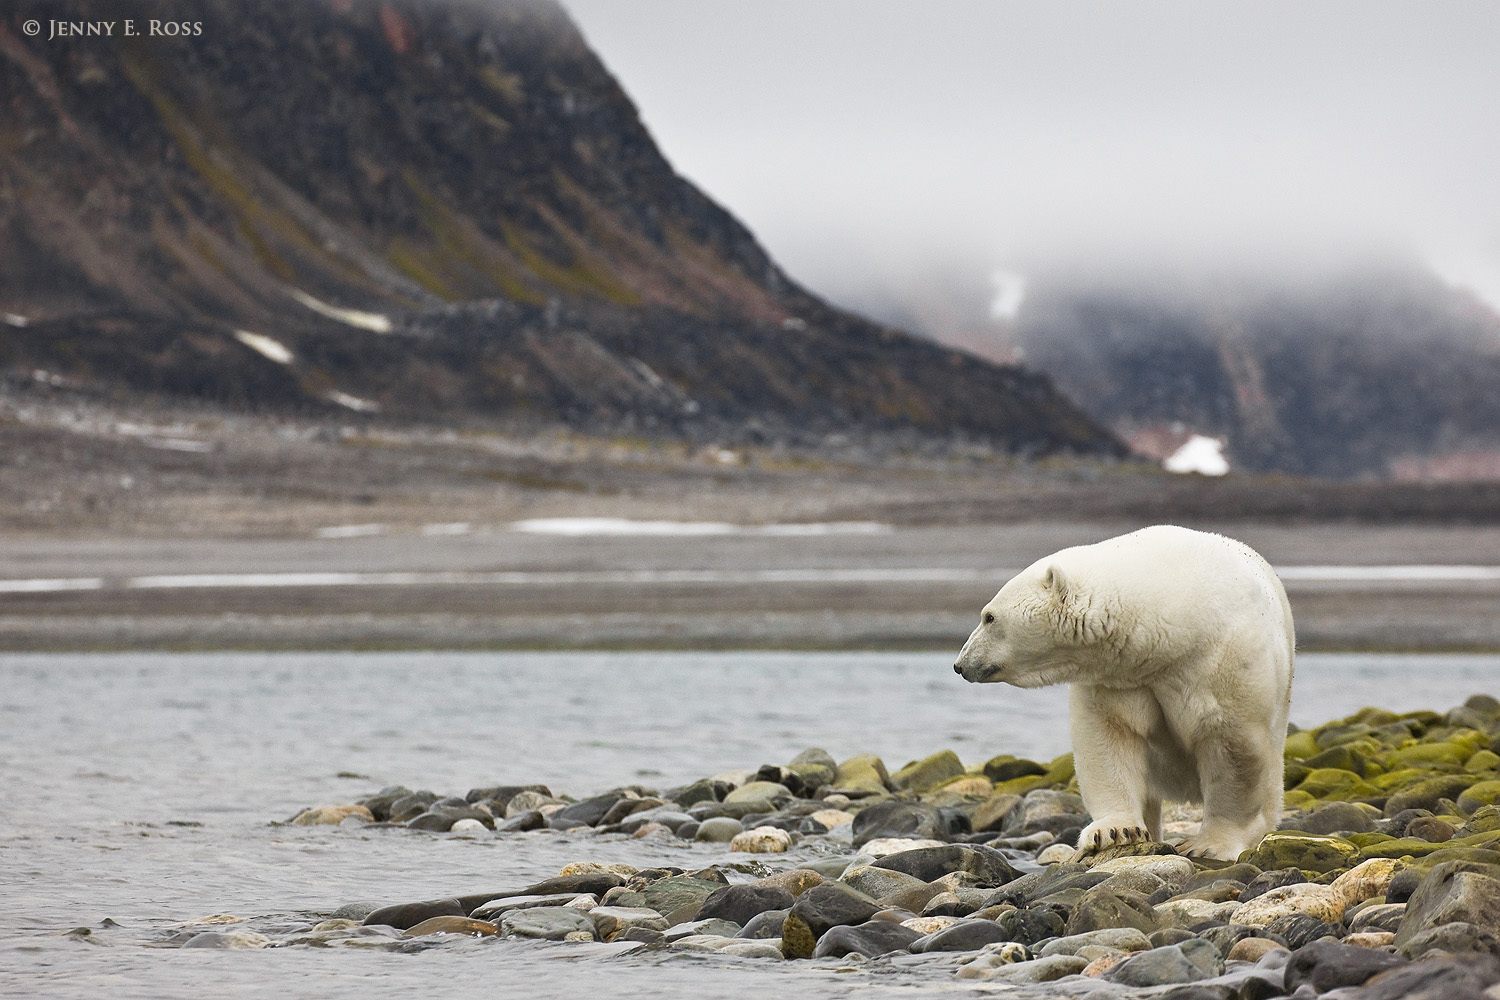 An adult female polar bear stranded ashore on Phippsoya in Norway's Svalbard Archipelago due to lack of sea ice.